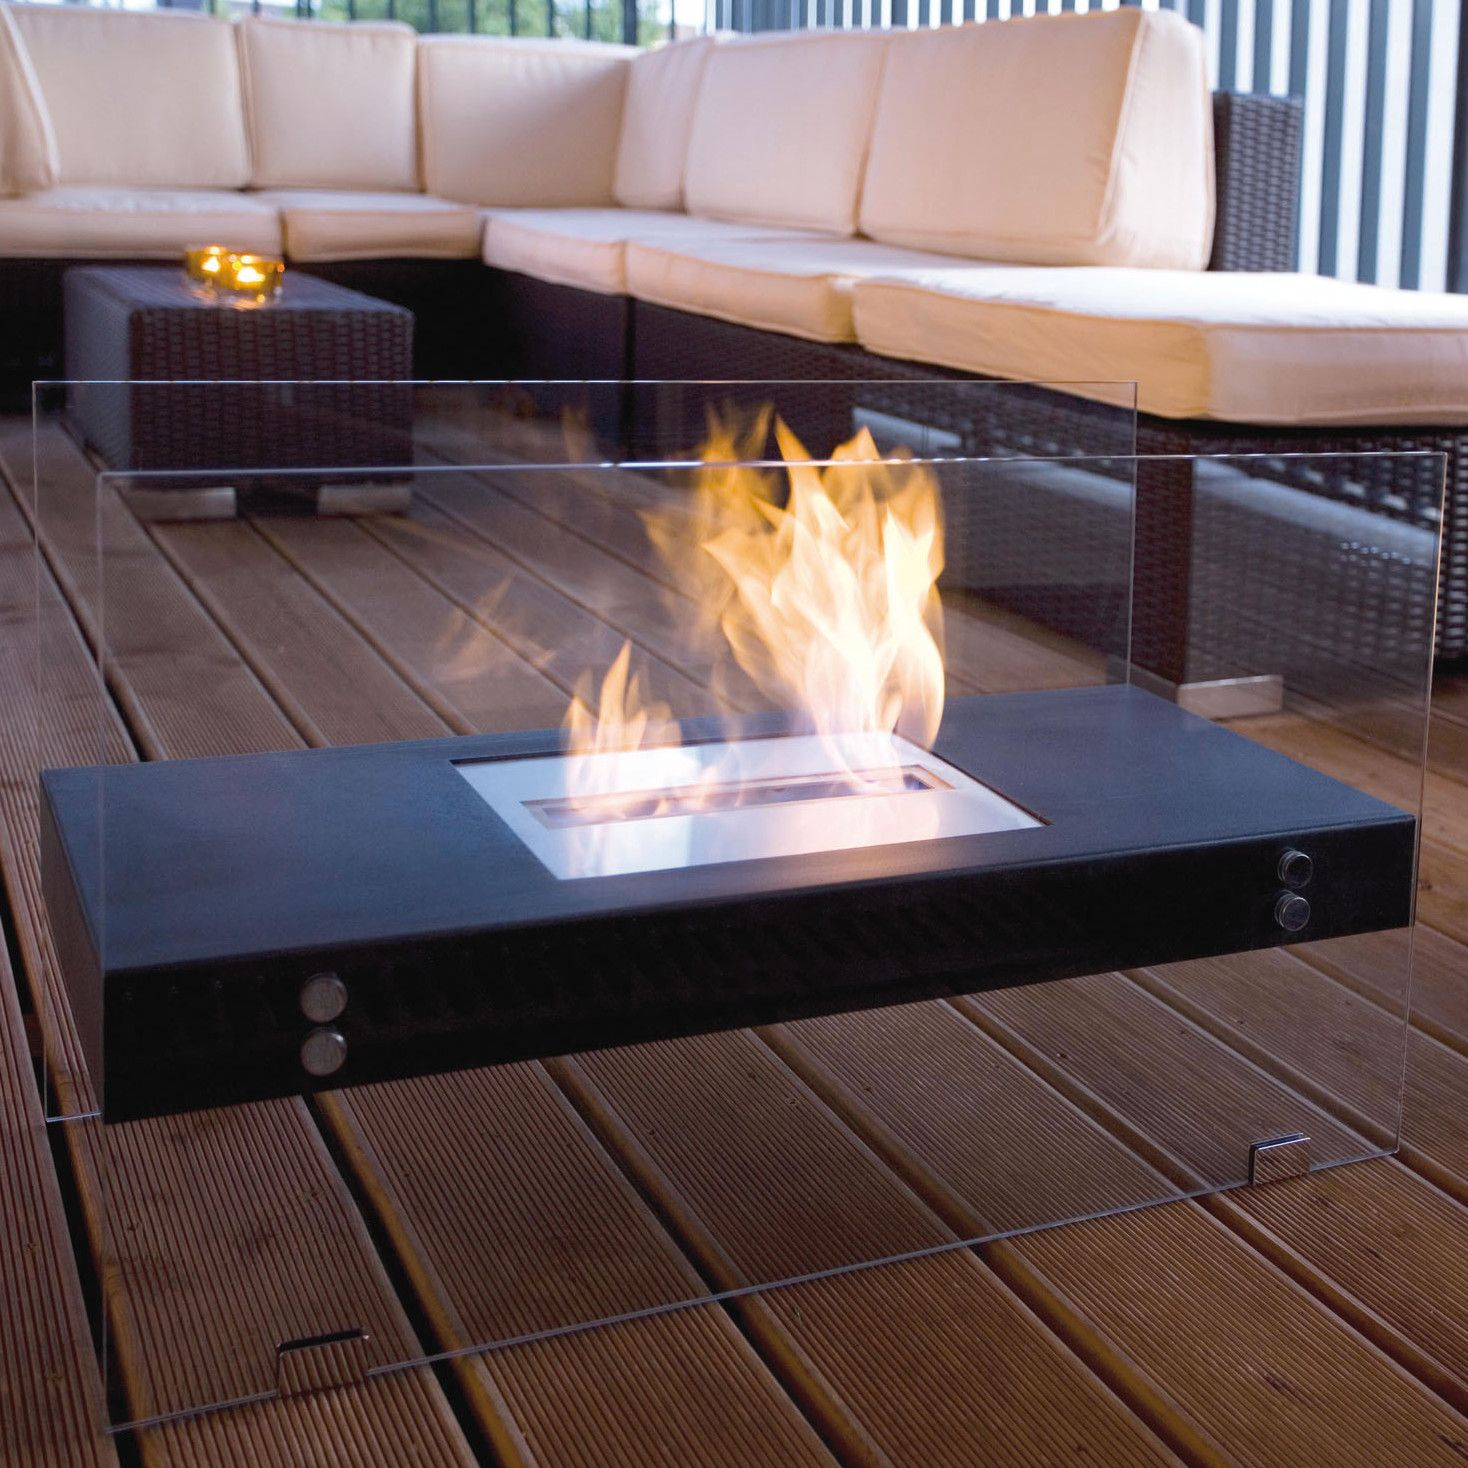 buschbeck boston bio ethanol fireplace allmodern 999 outdoor